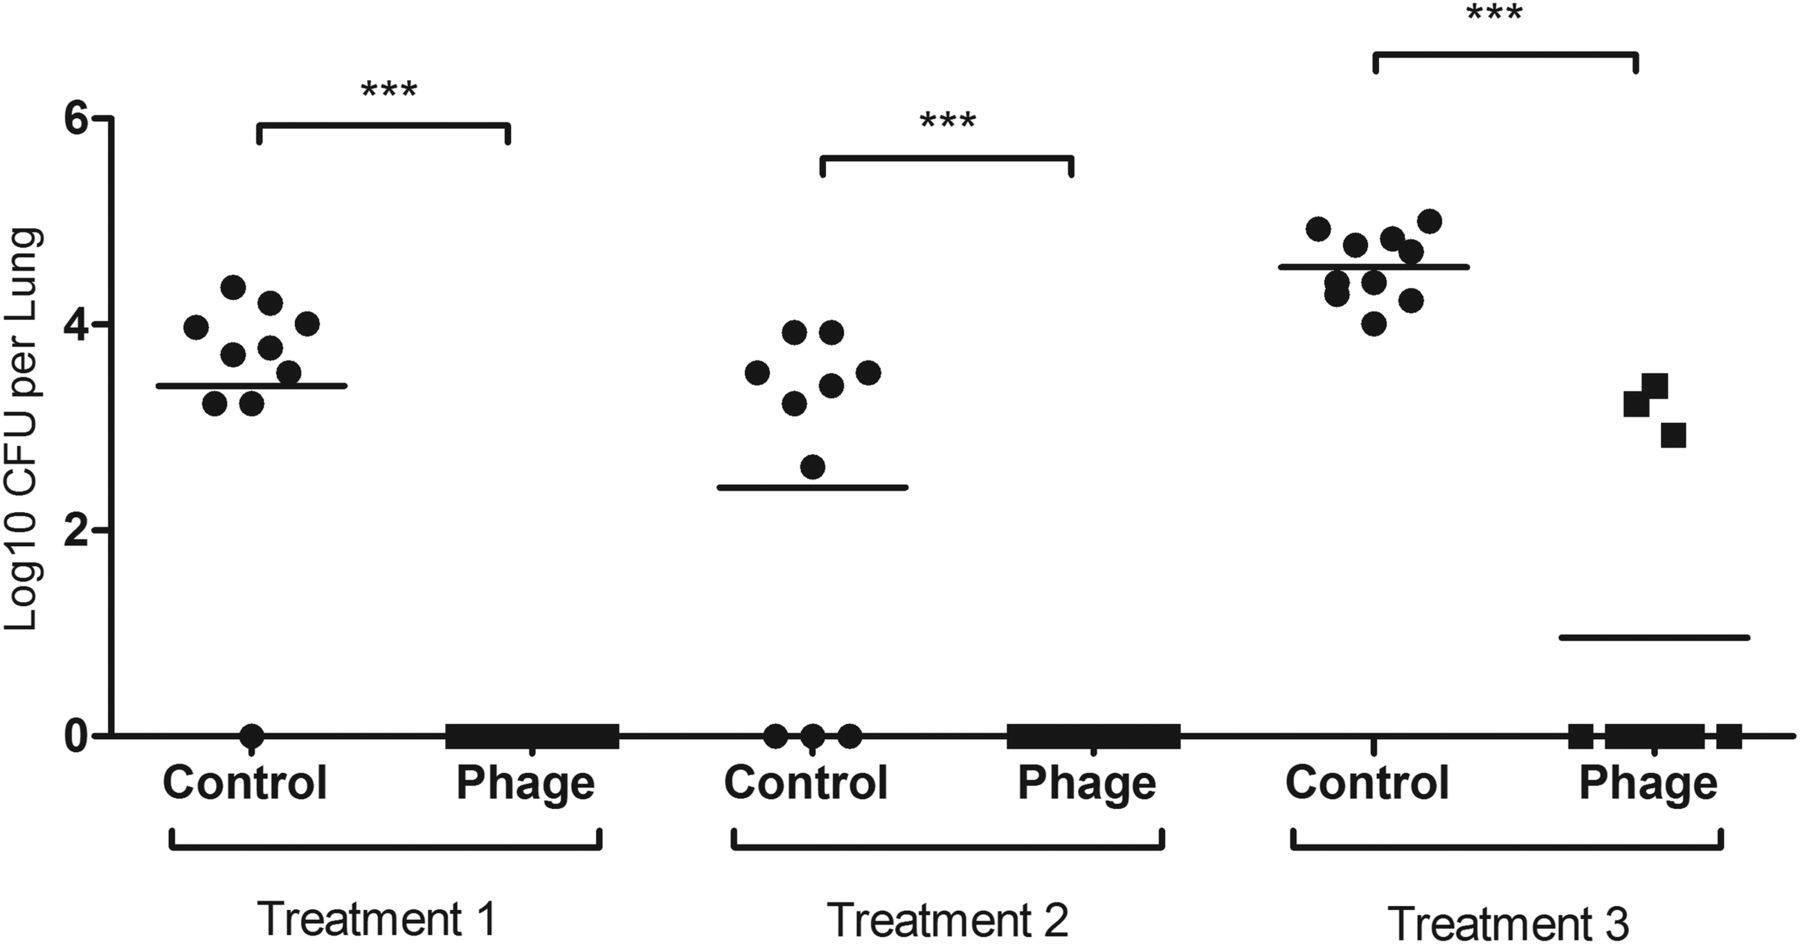 Phage therapy is highly effective against chronic lung